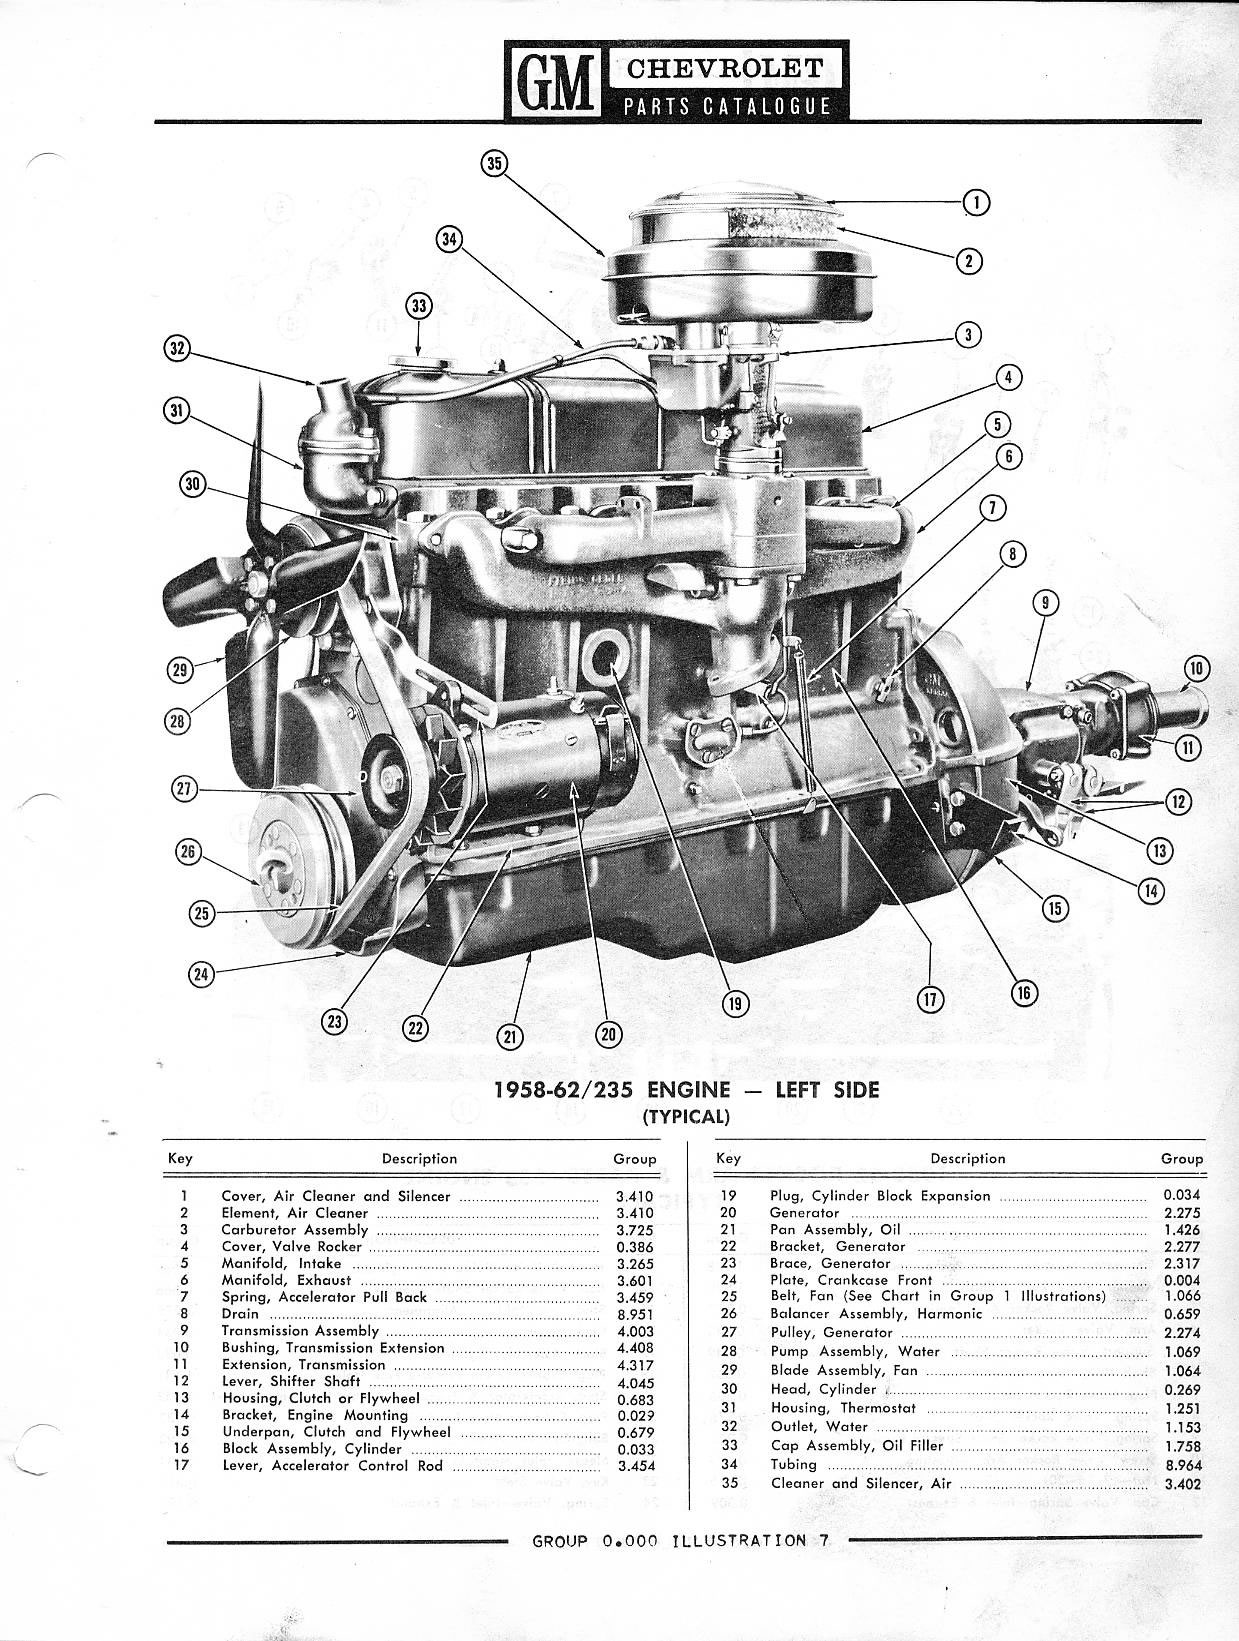 gm engine parts catalog  gm  free engine image for user